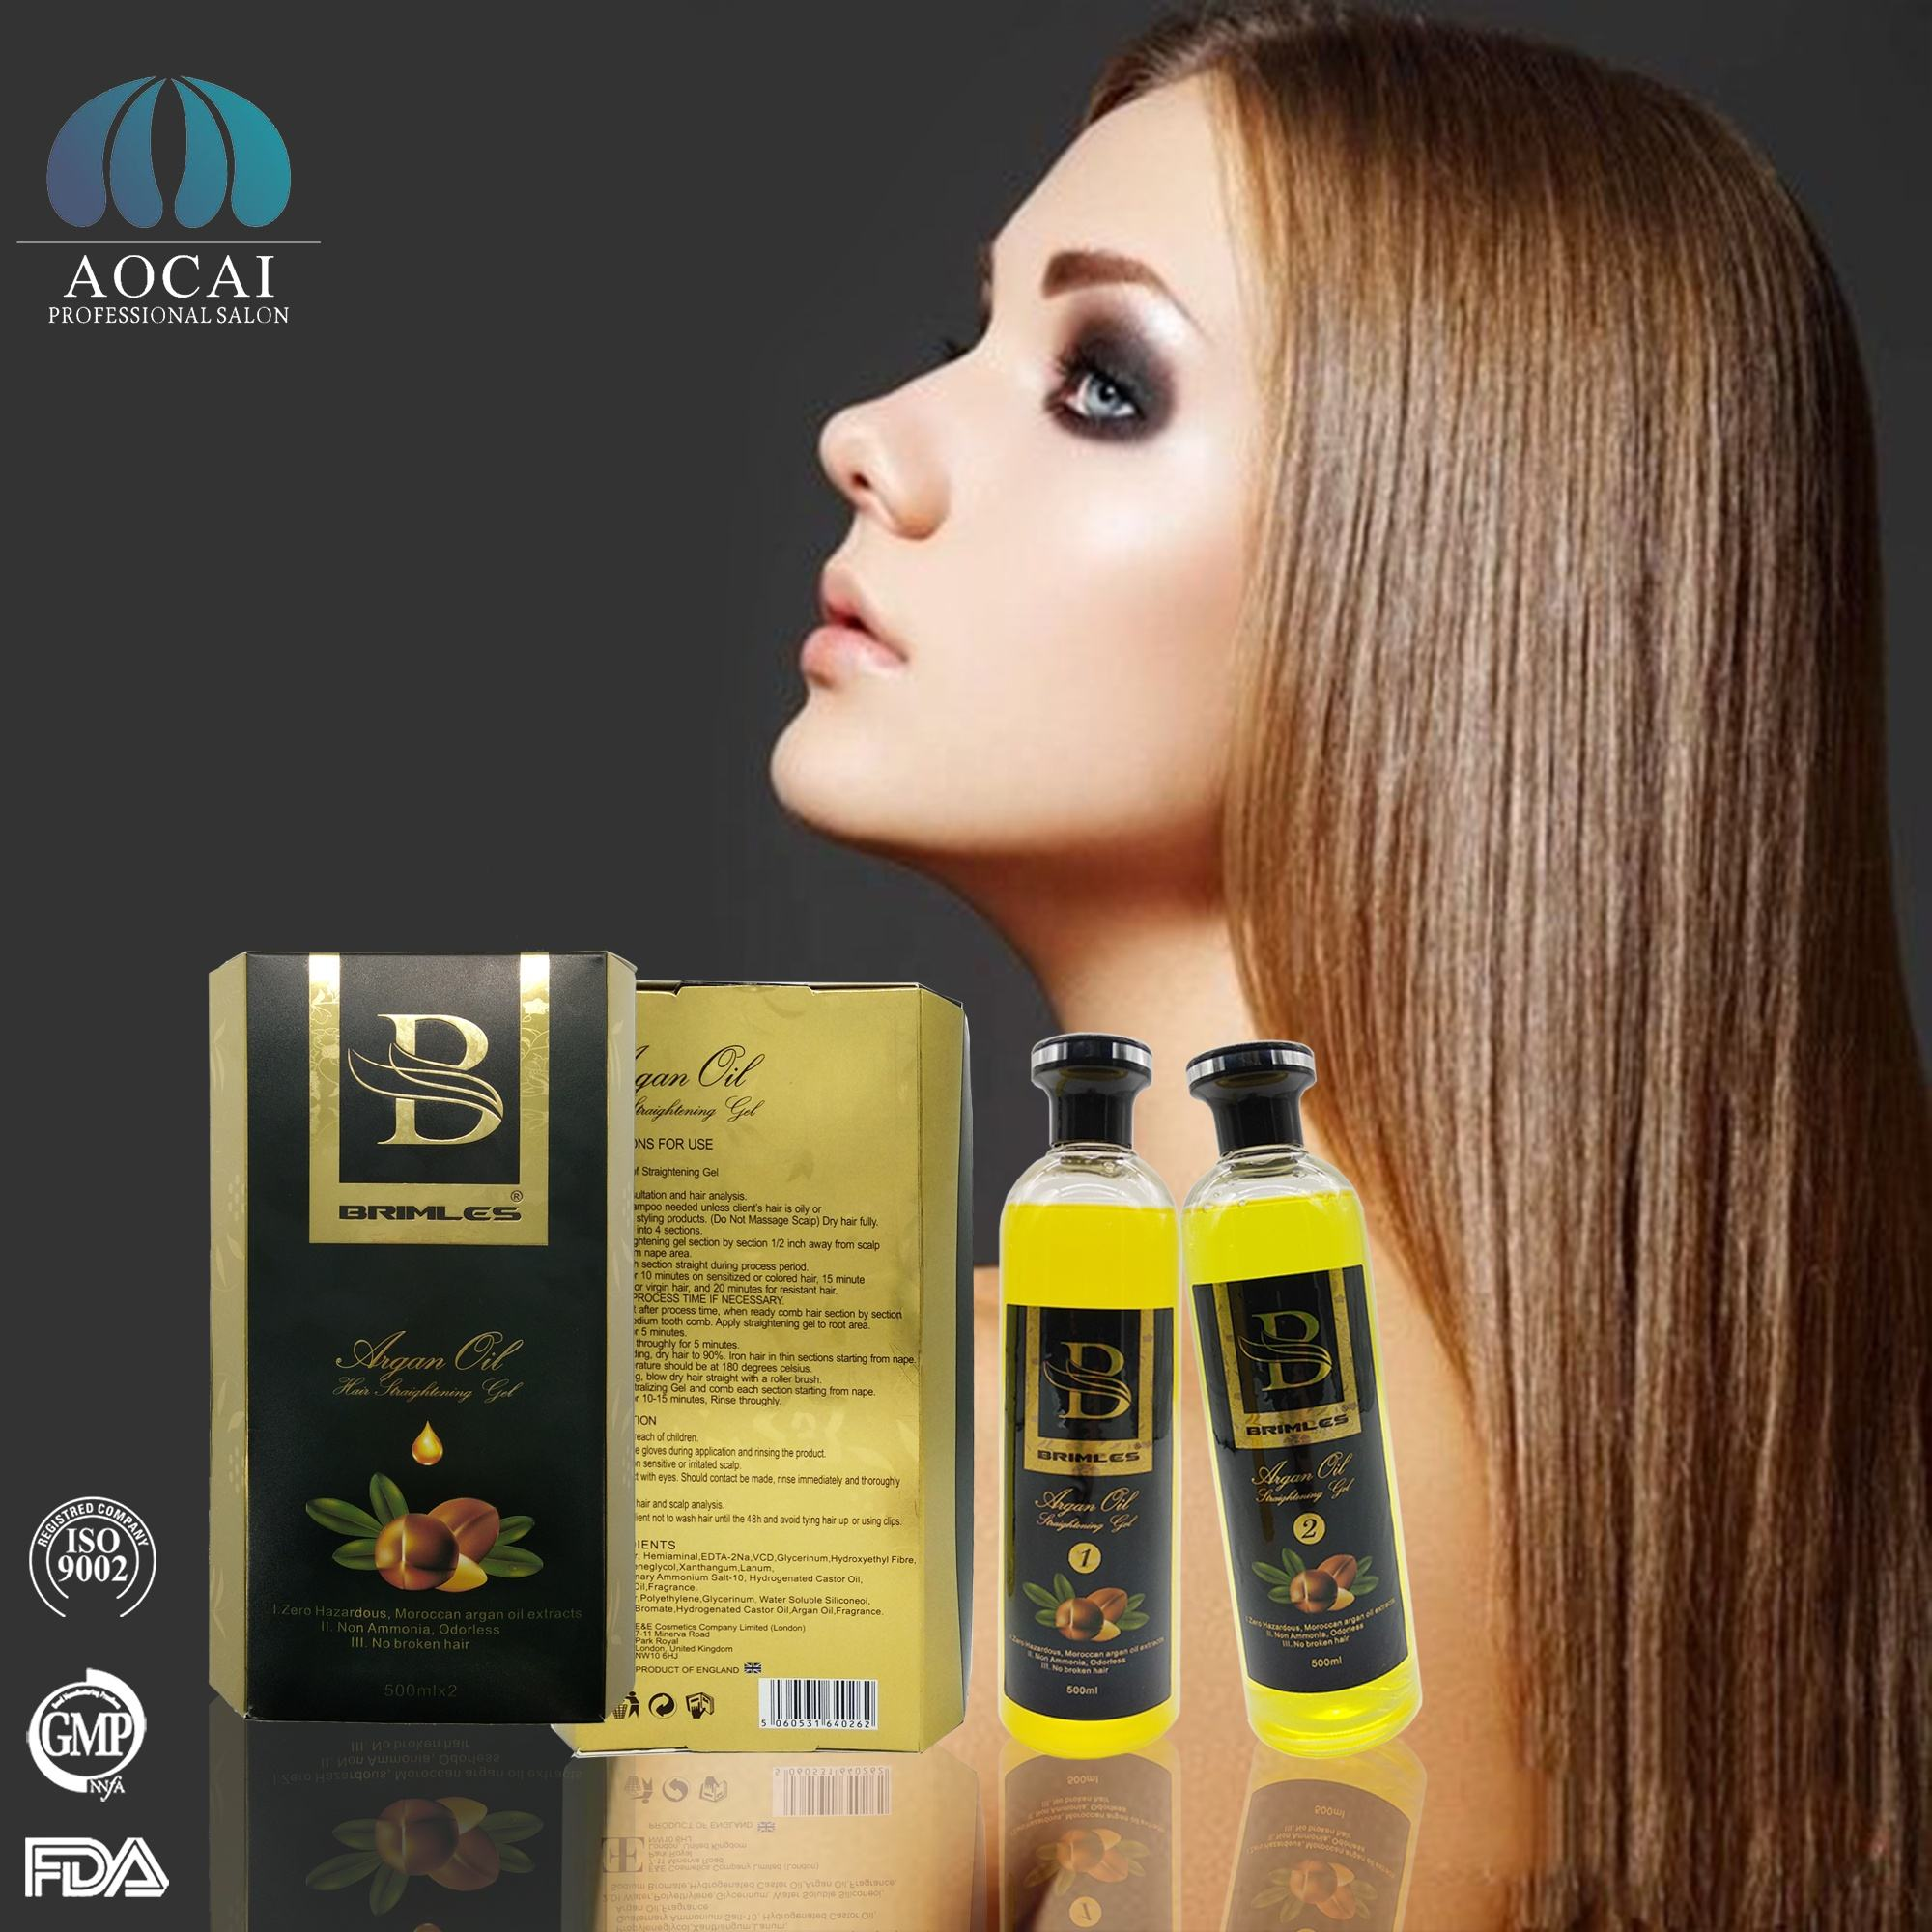 Hair straighten cream Hair Perm lotion for Coarse or Resistant Hair Professional Use Only